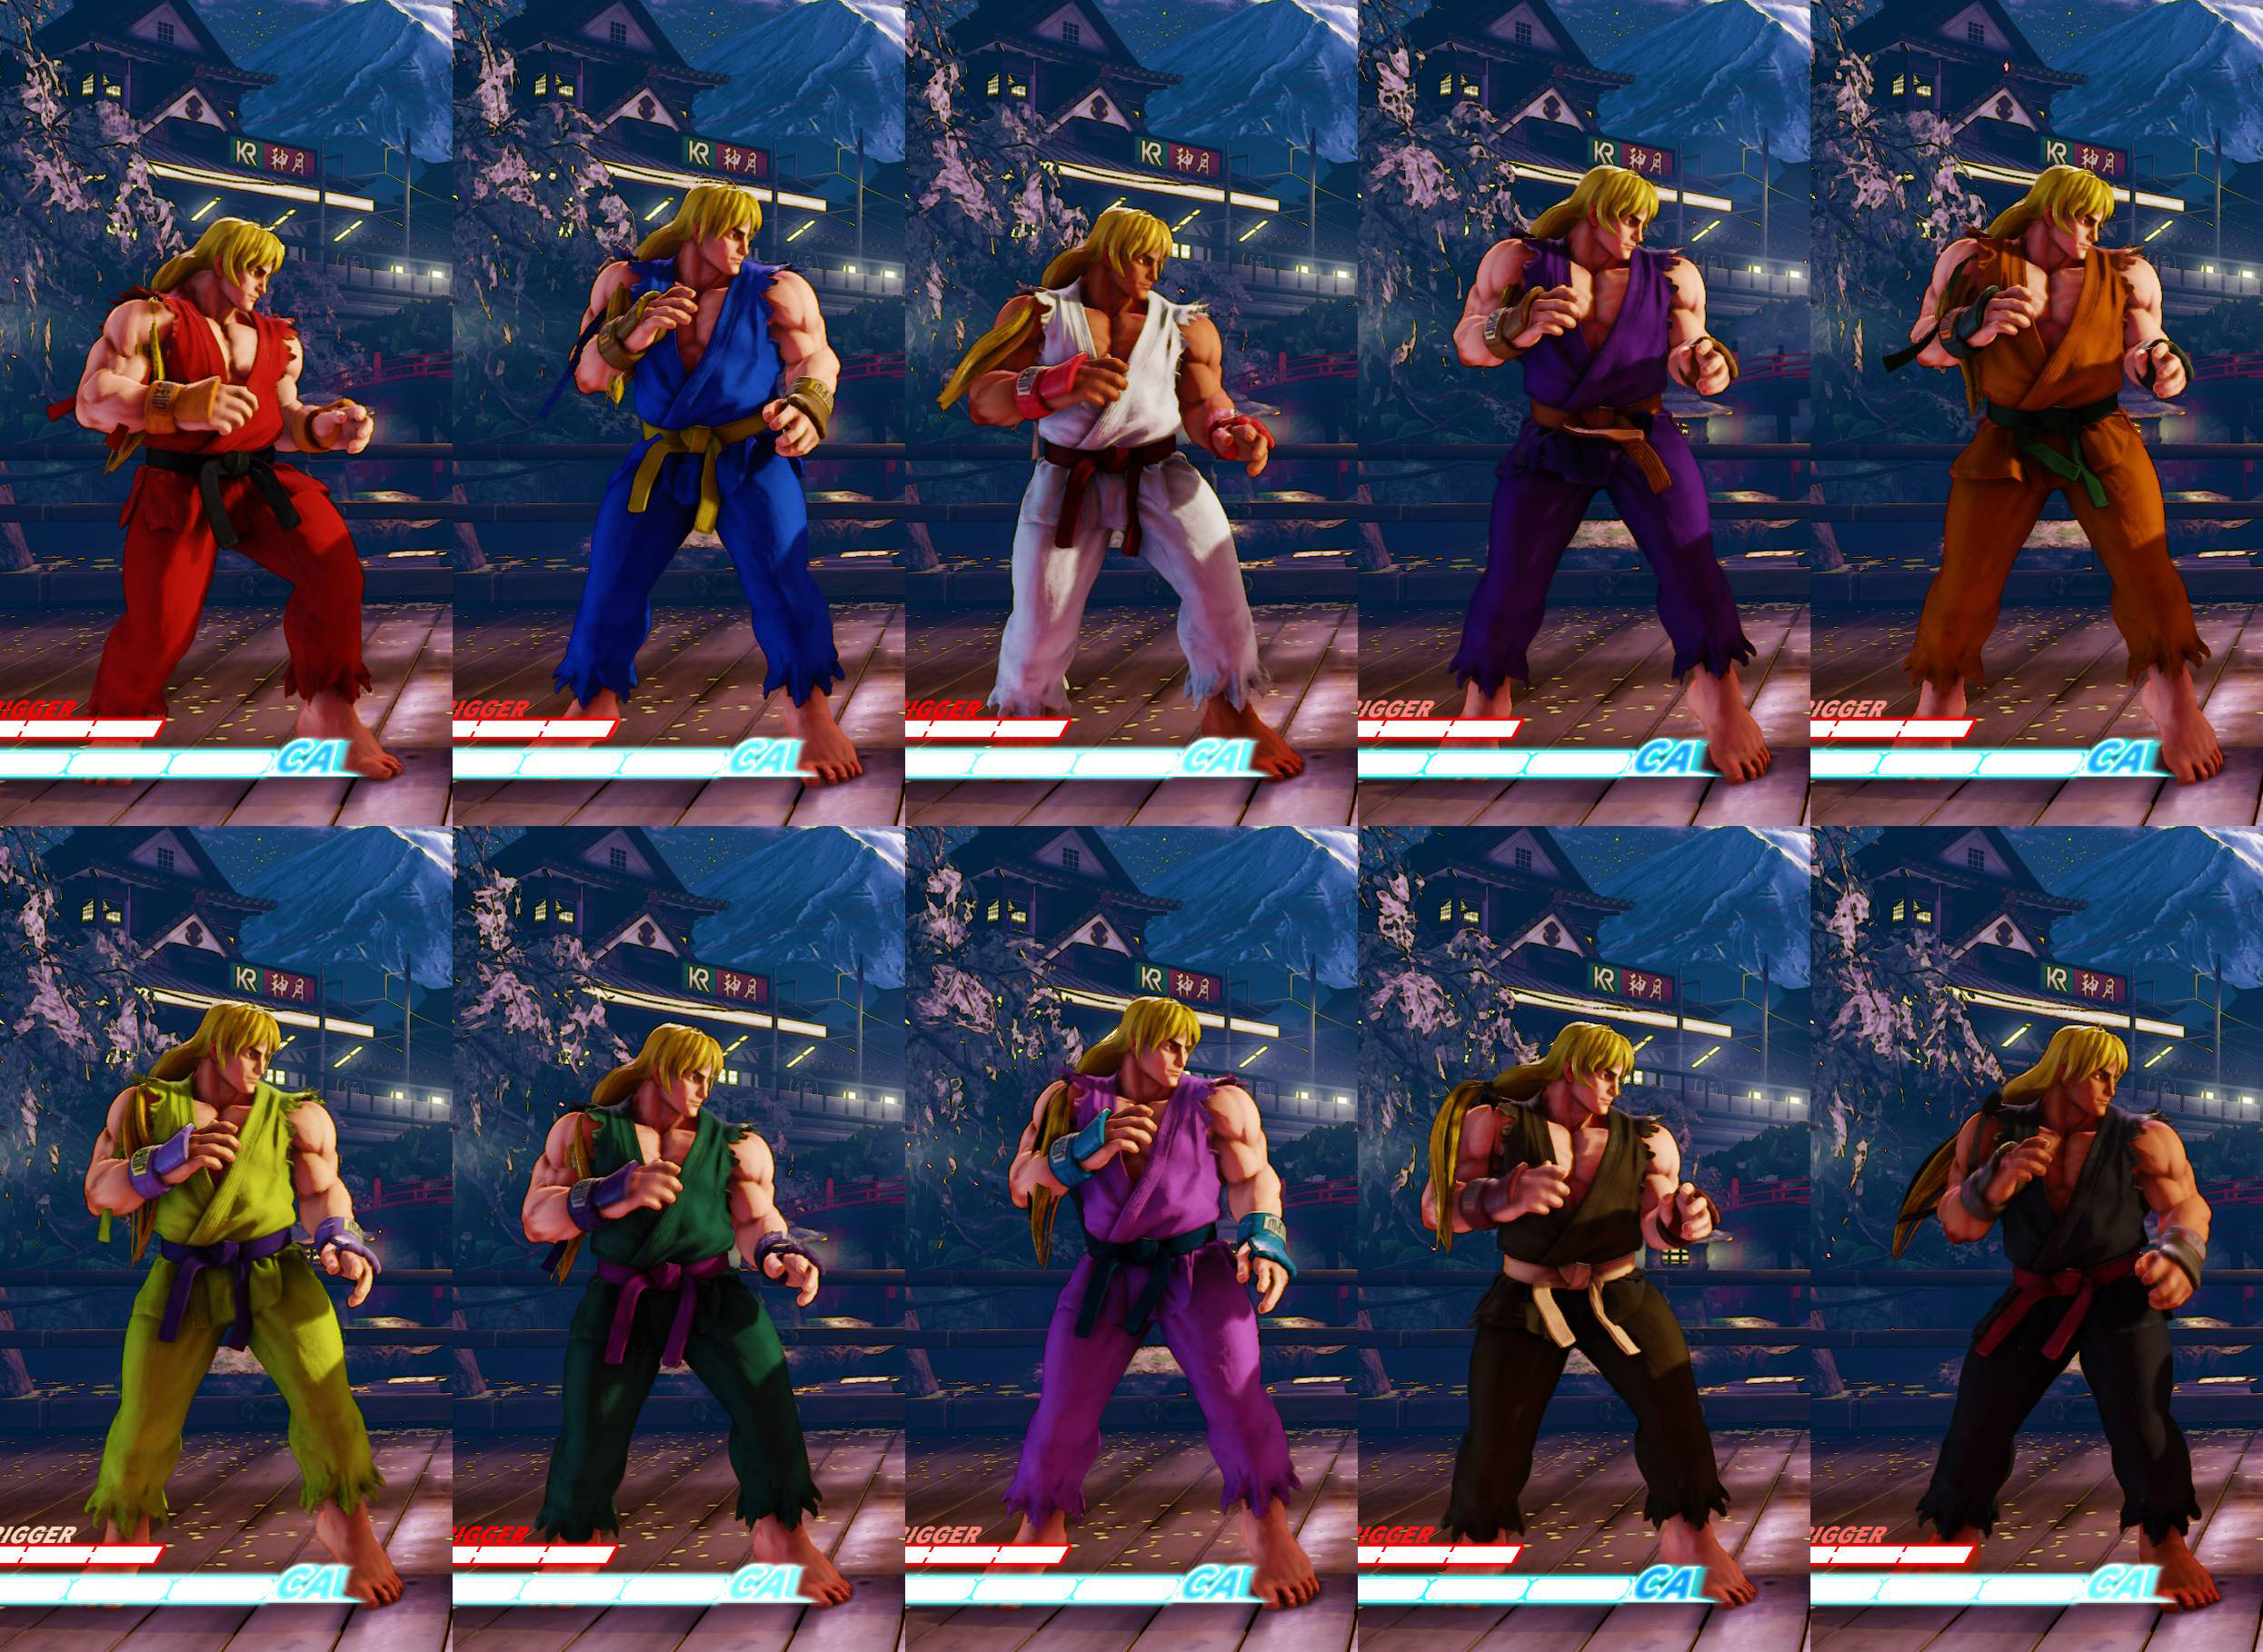 All colors for SF5 story and pre-order costumes 17 out of 21 image gallery